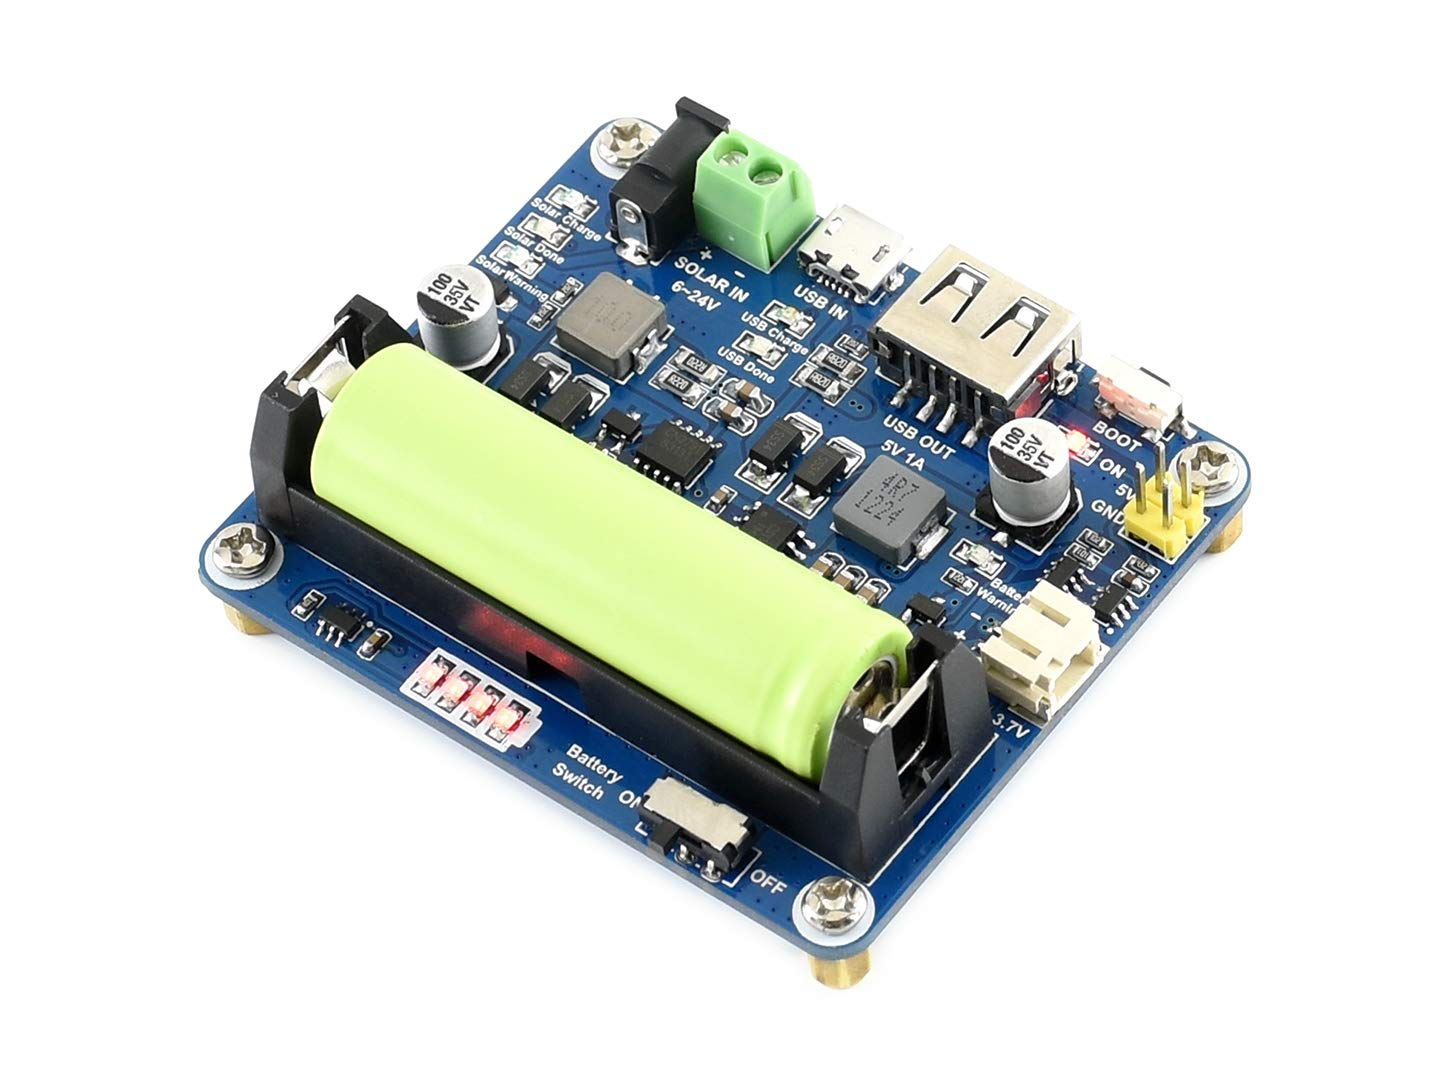 Waveshare Solar Power Management Module for 6V~24V Solar Panel with MPPT Function and Multi Protection Circuits Working with High-Efficiency Stability and Safety.